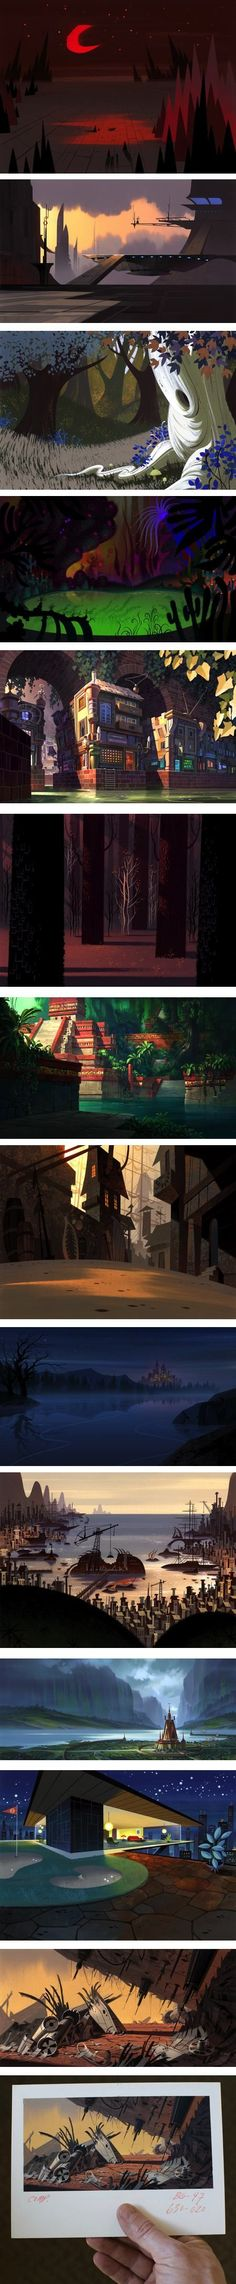 Scott Wills: Fabulous backgrounds! And awesome website!